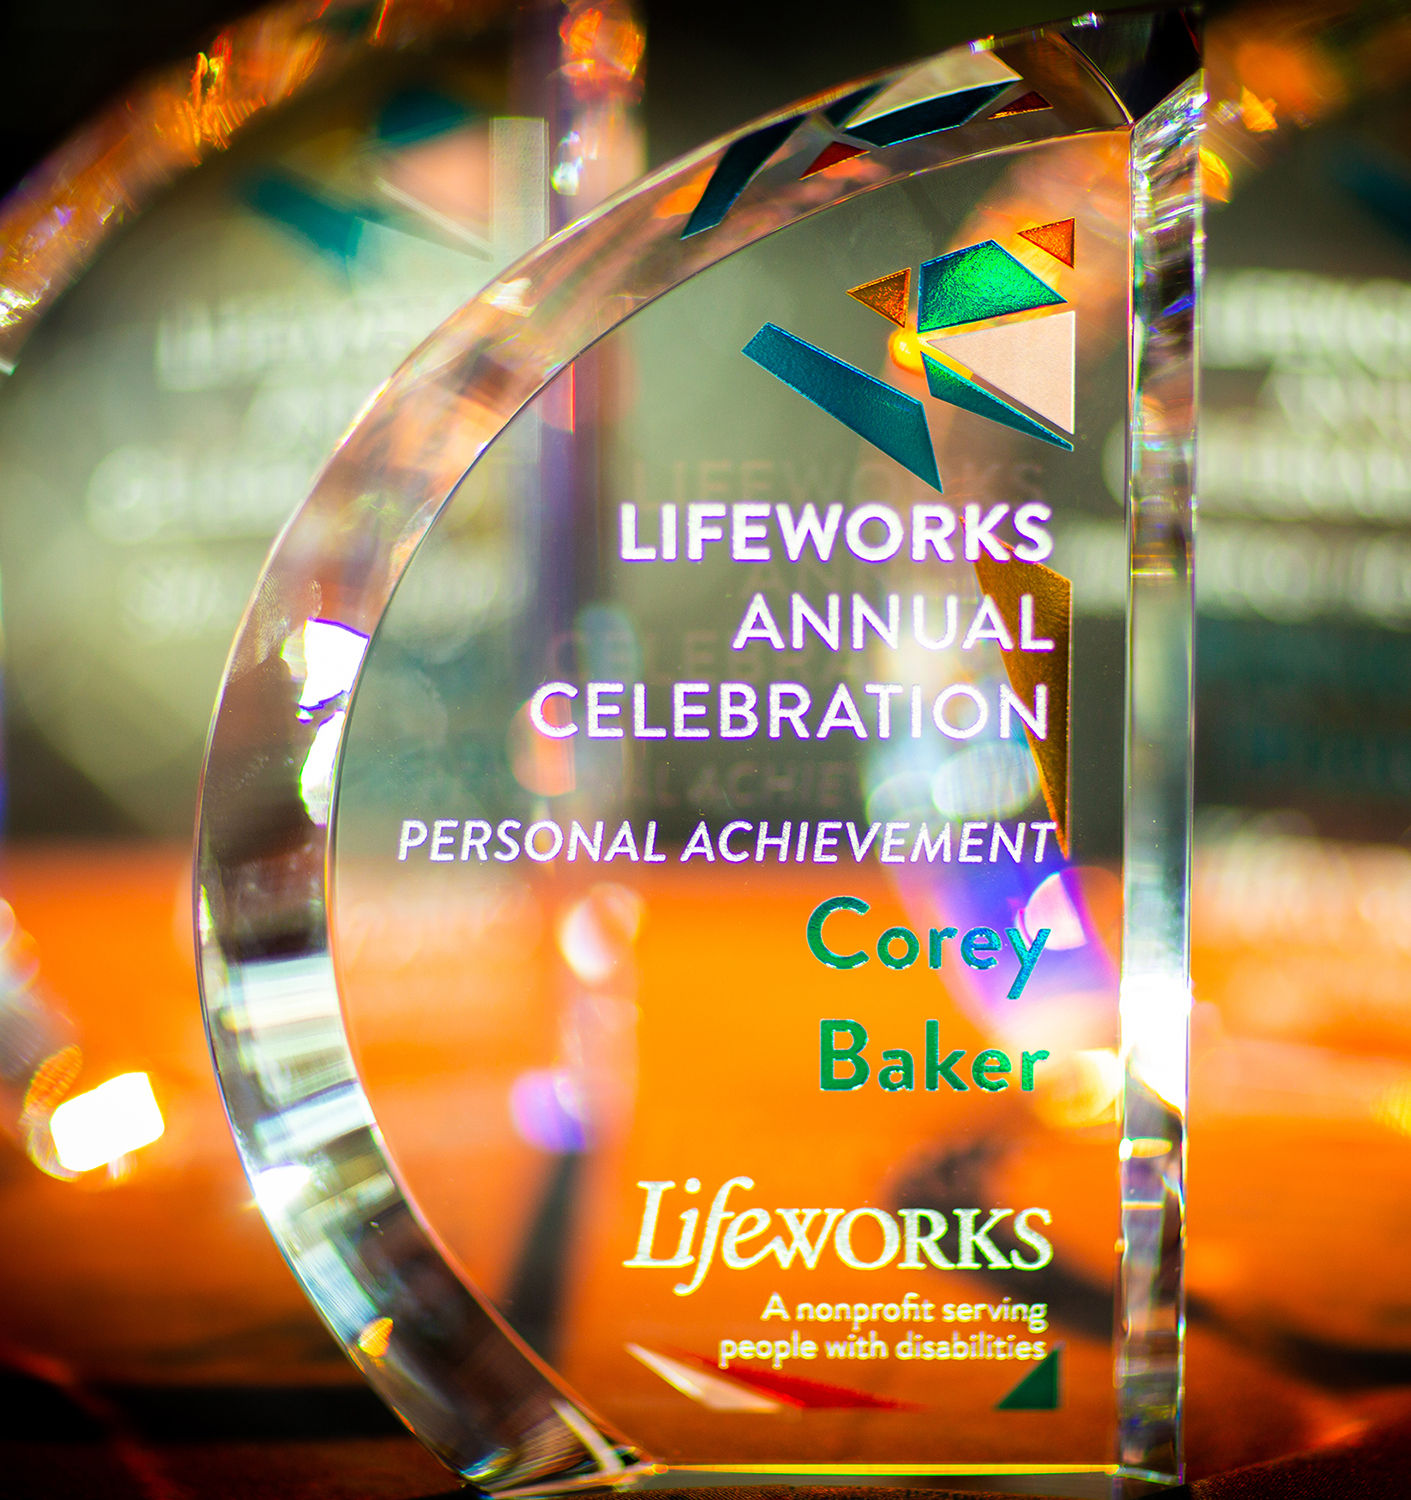 Lifeworks-Annual-Celebration-Awards-1